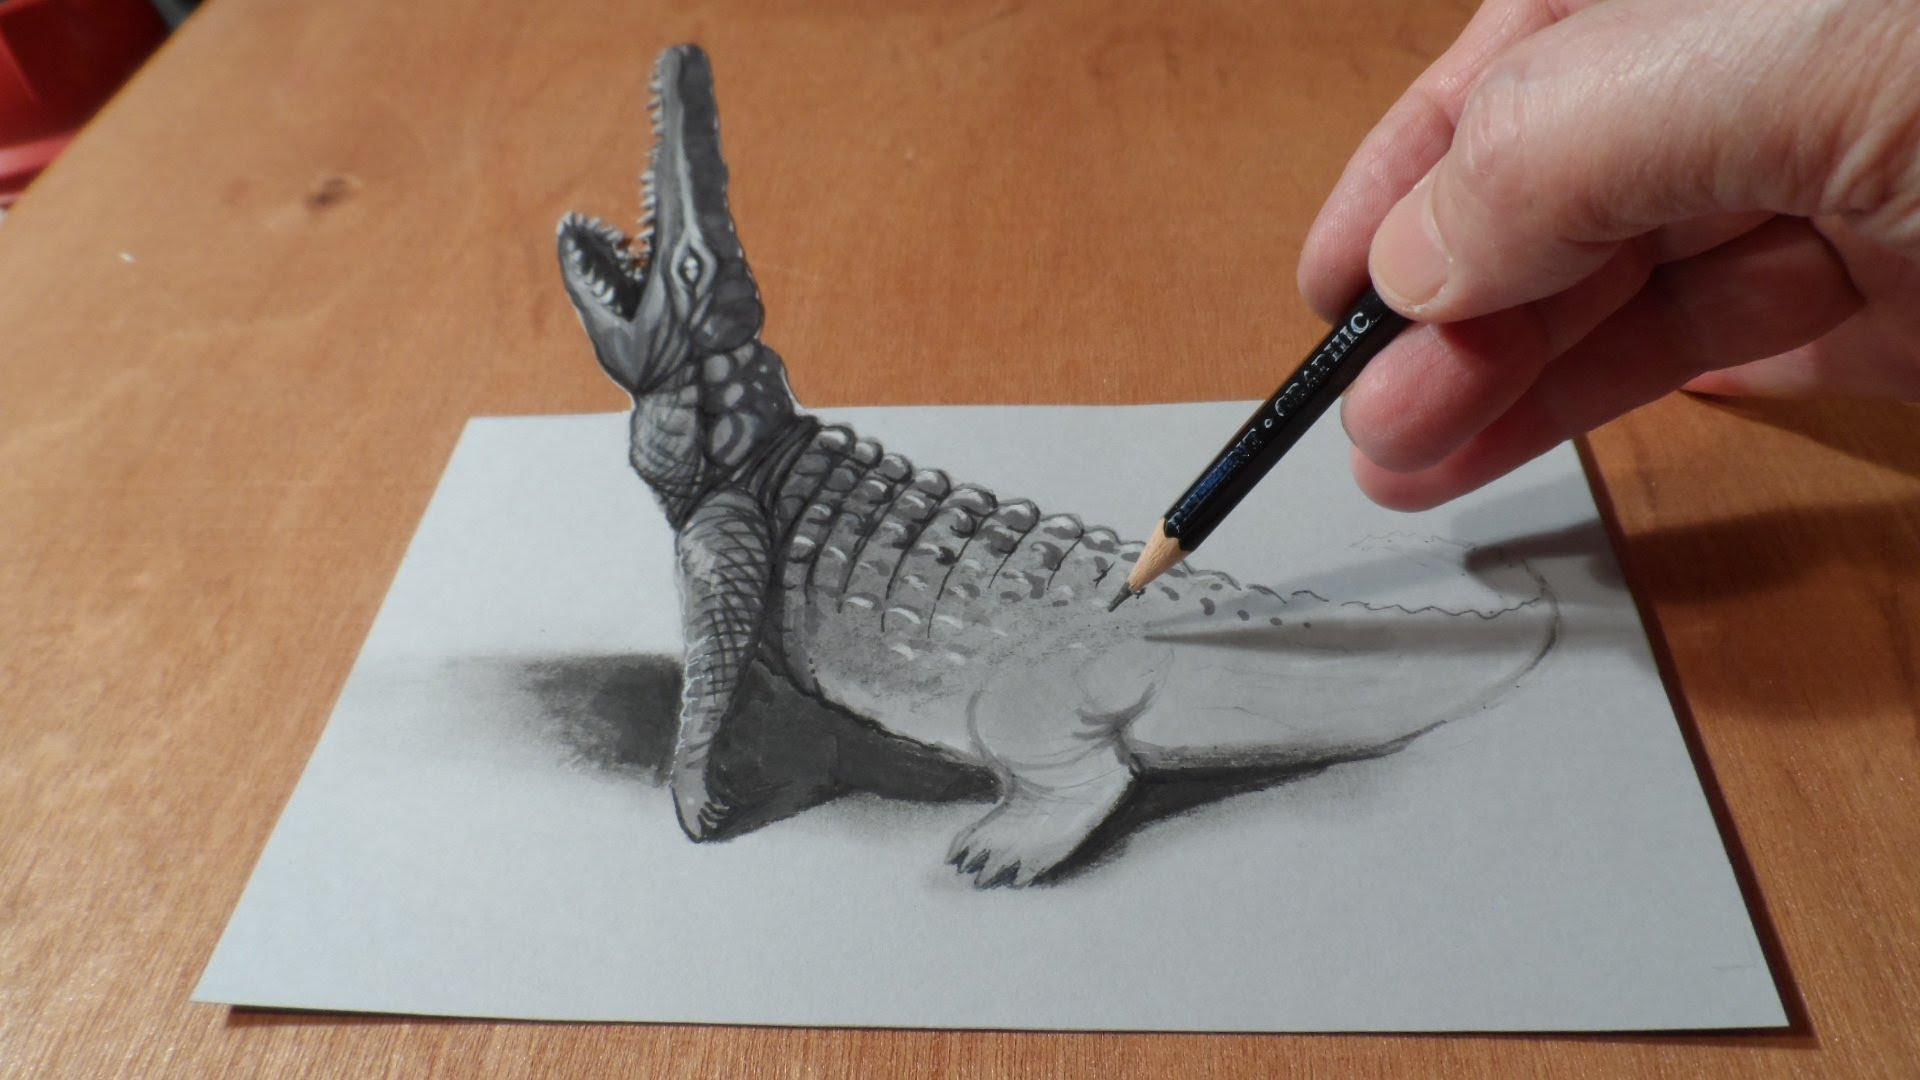 Drawn 3d art #5